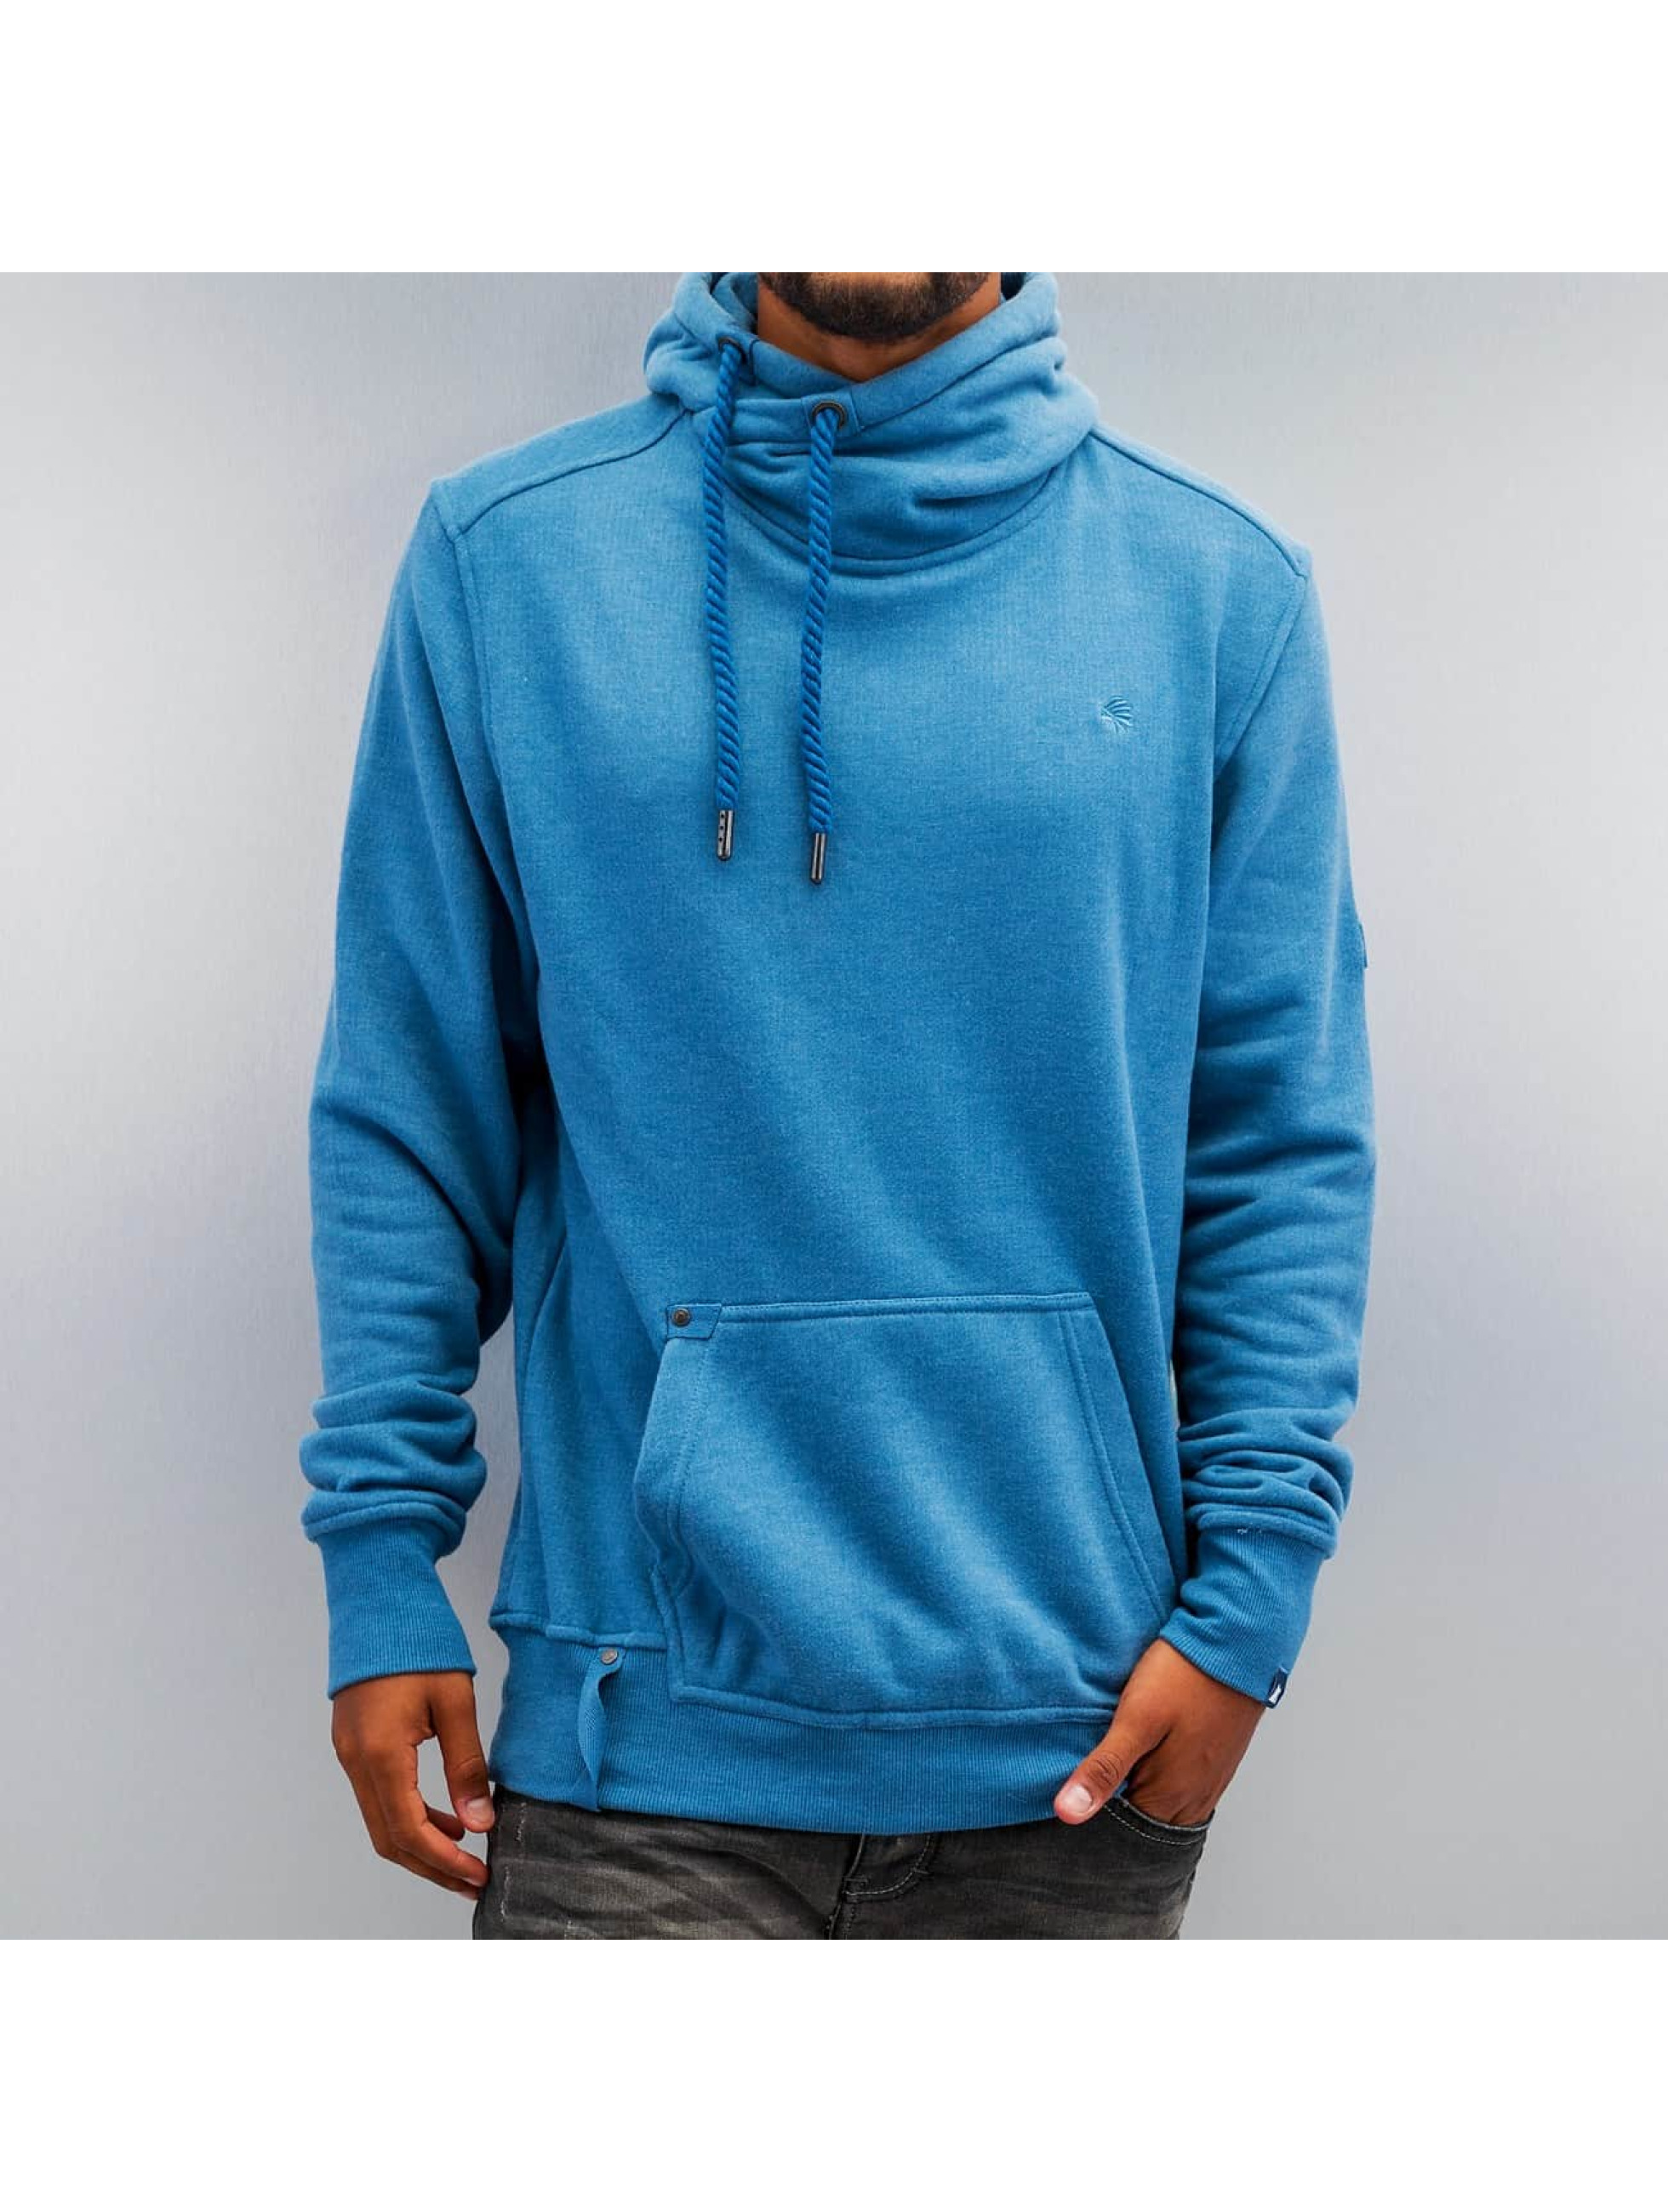 Alife & Kickin Hoody Johnson blau